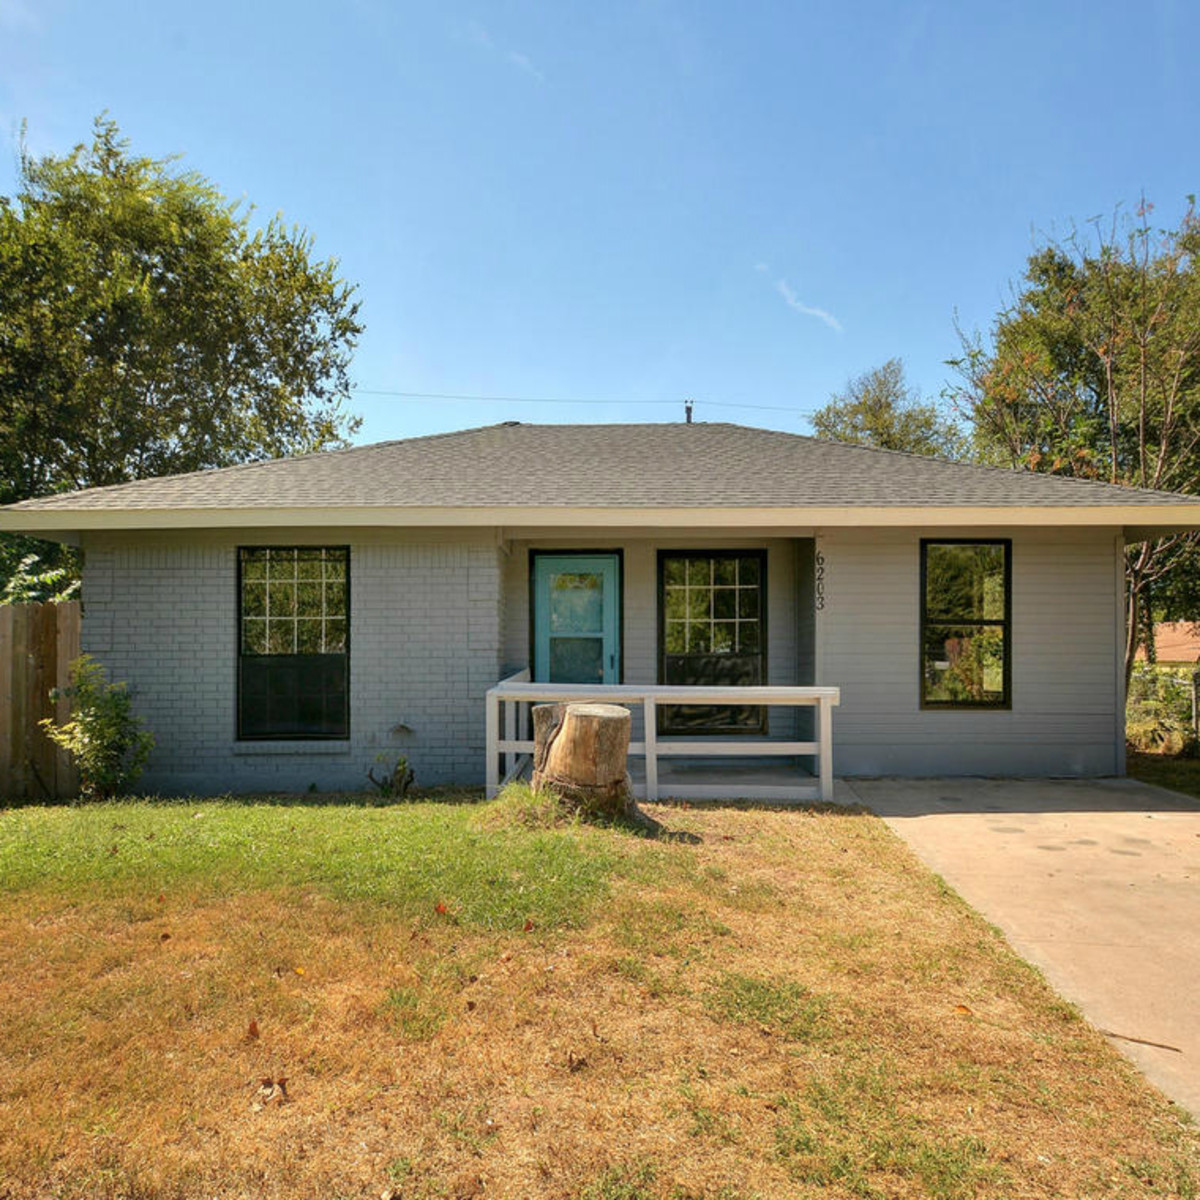 Austin house home 6203 Stiles Cove 78721 February 2016 front